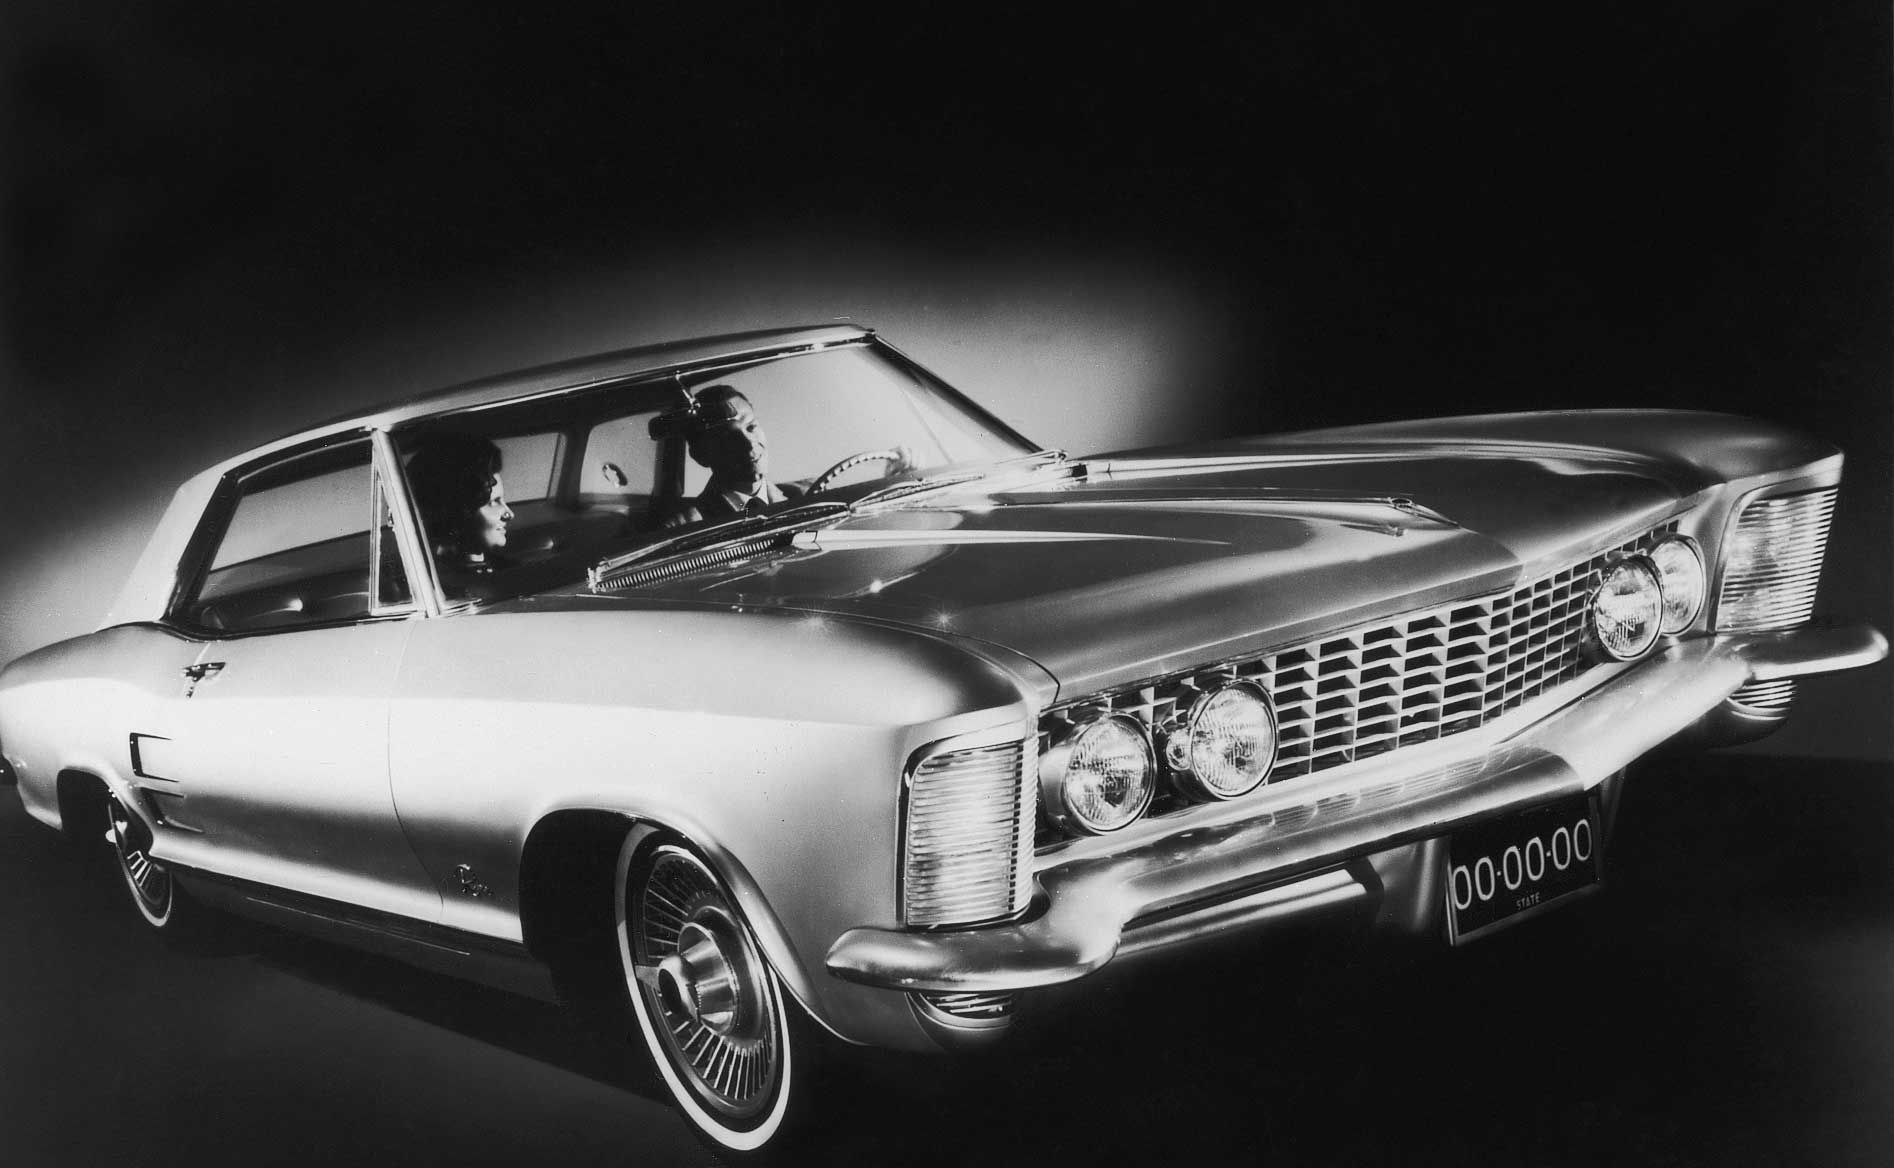 Car of the Week: 1963 Buick Riviera - Old Cars Weekly | Classic Cars ...